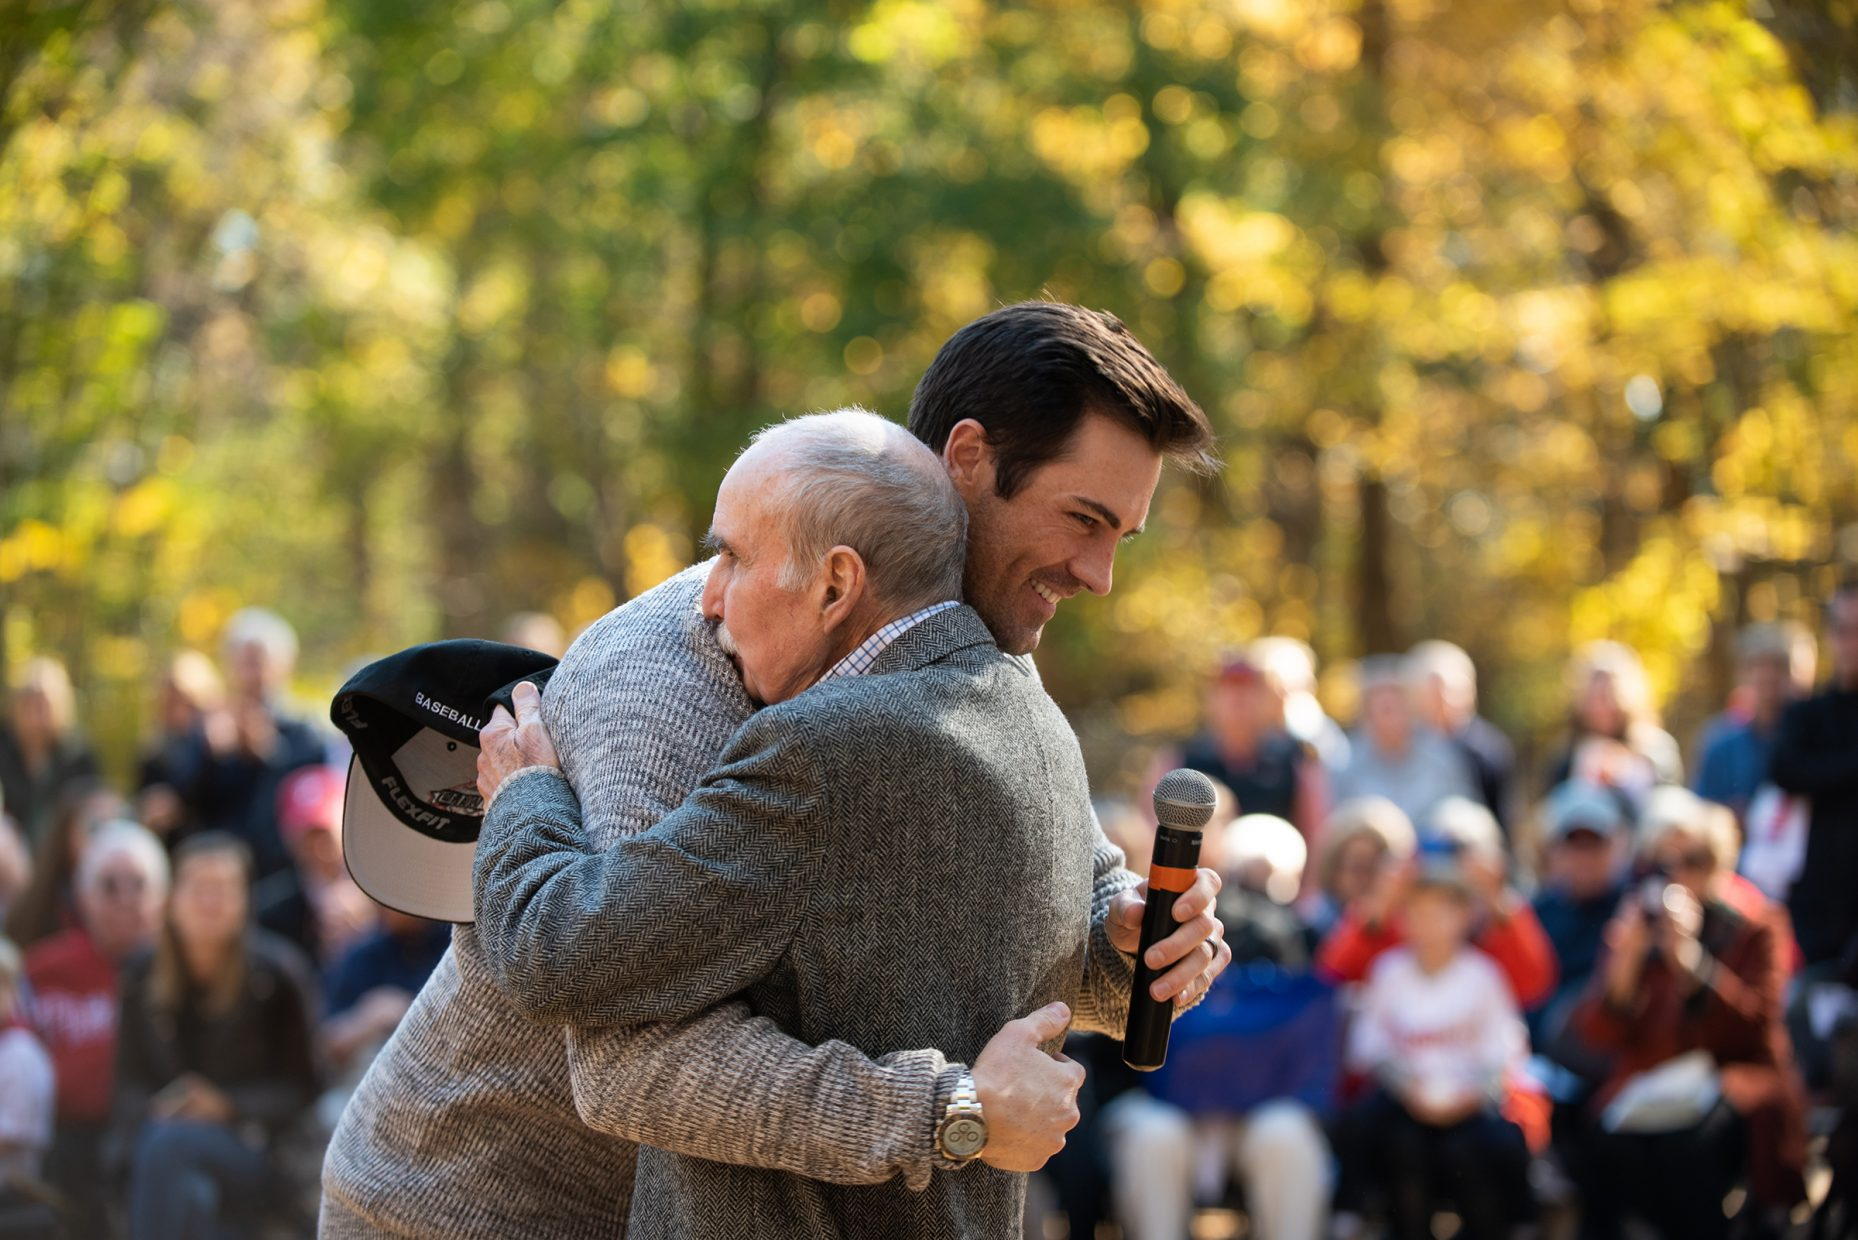 Two men hug on a baseball field in the fall.